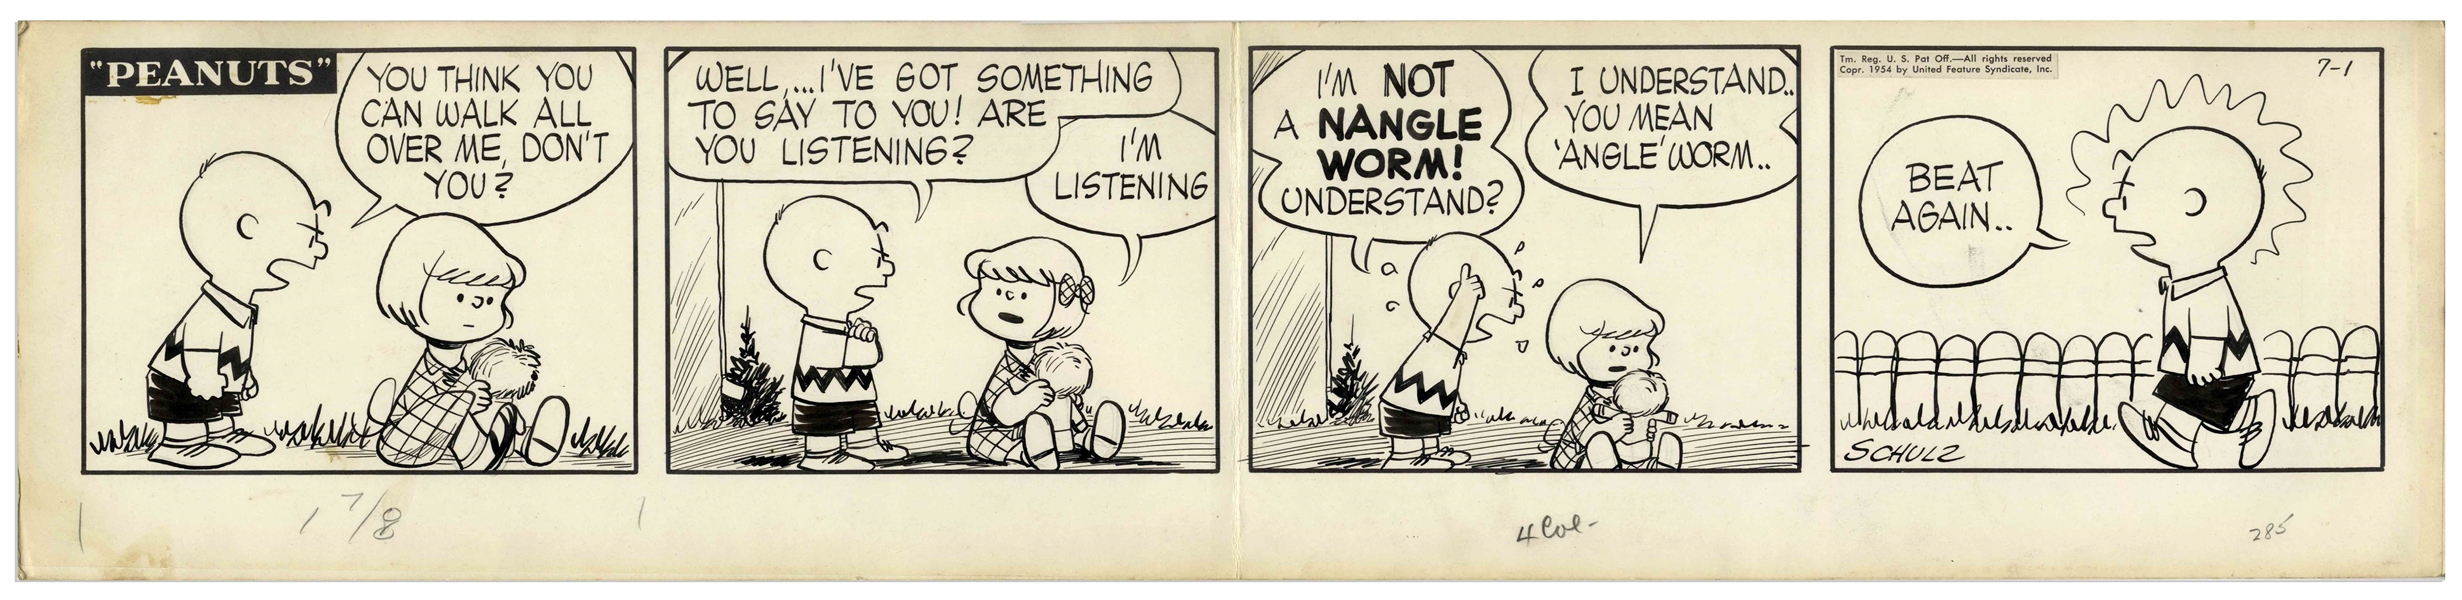 Charles Schulz Original Hand-Drawn ''Peanuts'' Comic Strip From 1954 -- Featuring Charlie Brown & His Frenemy Patty